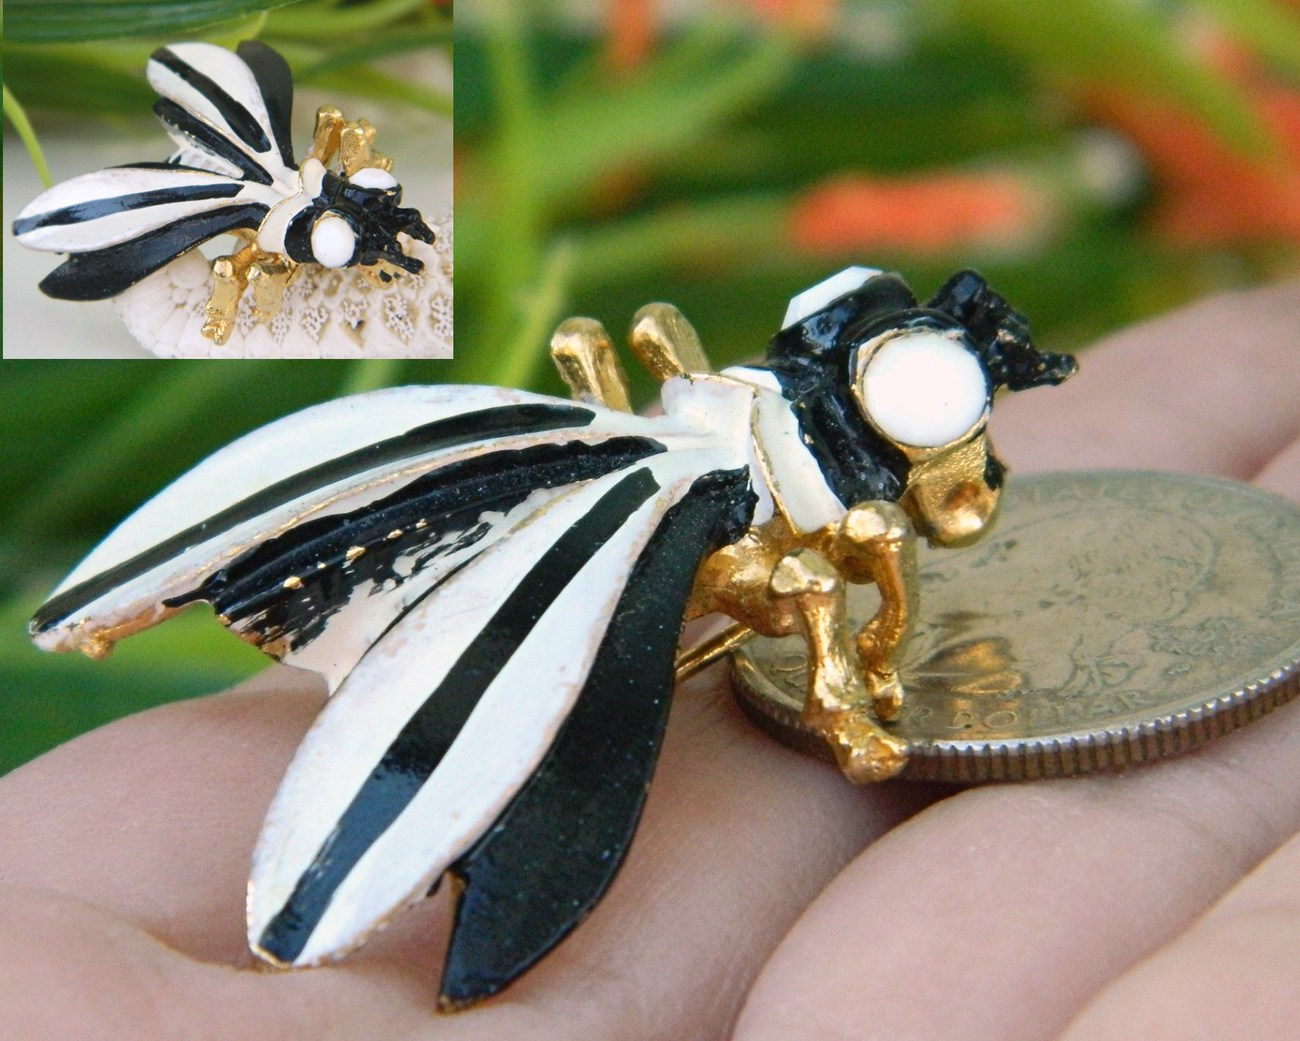 Vintage Weiß : Vintage Weiss Bug Insect Fly Brooch Pin Black White Enamel - Pins ...